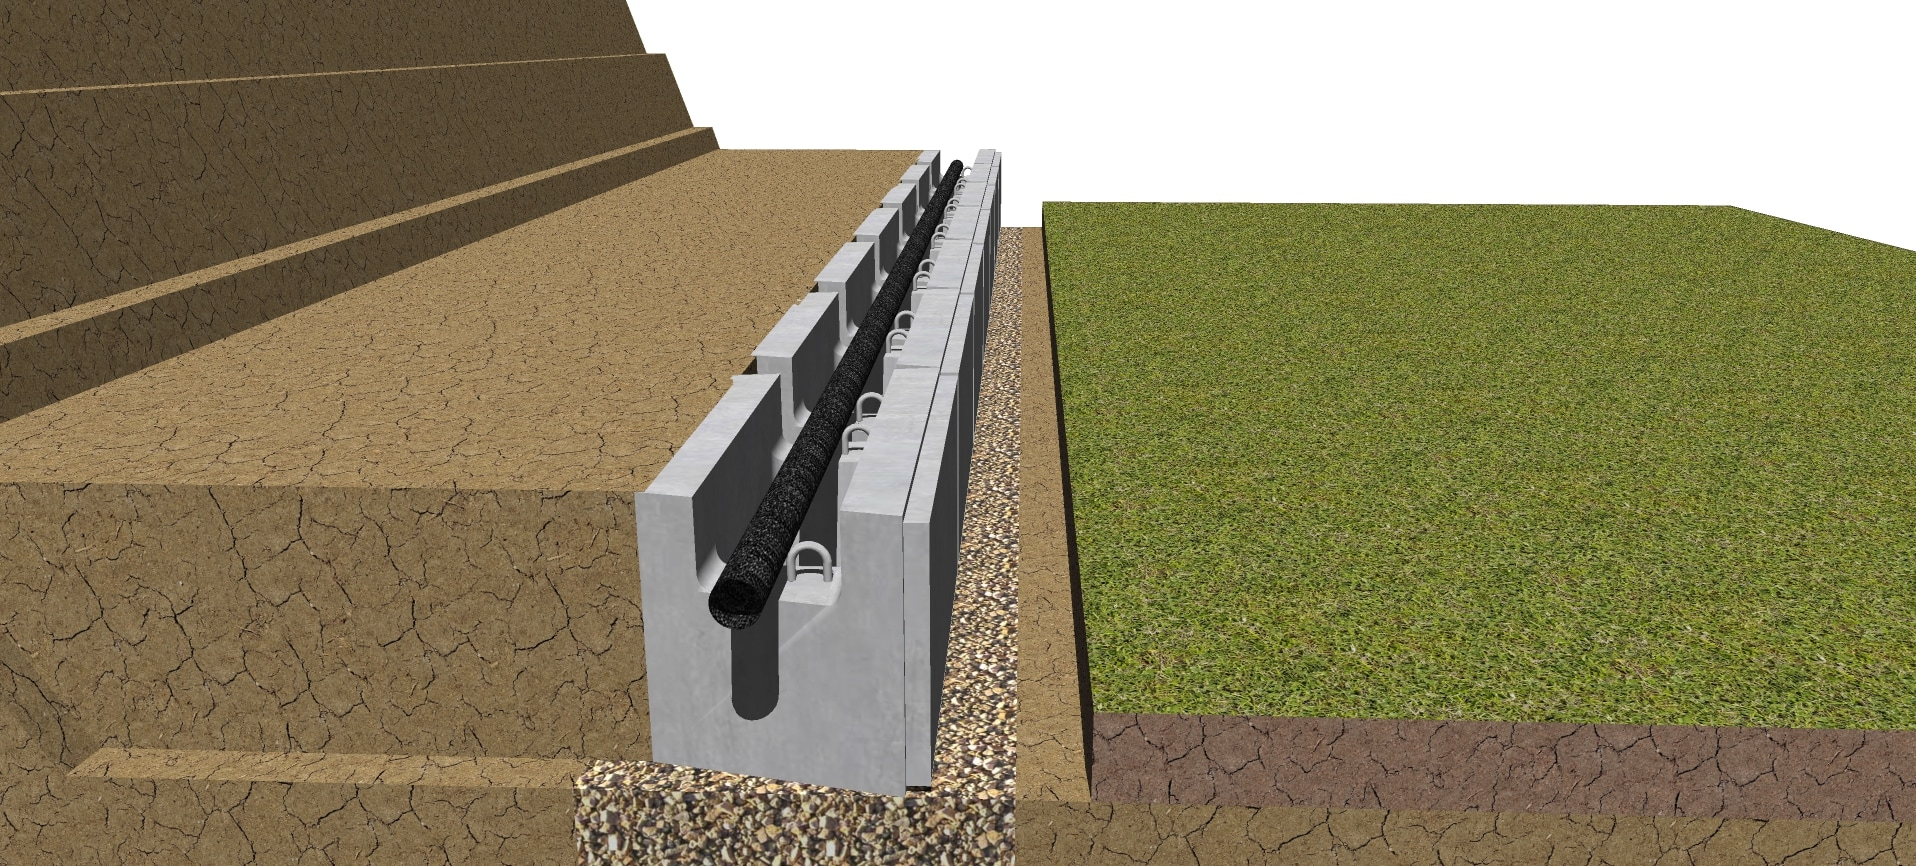 Drain Pipe in first row of geogrid retaining wall